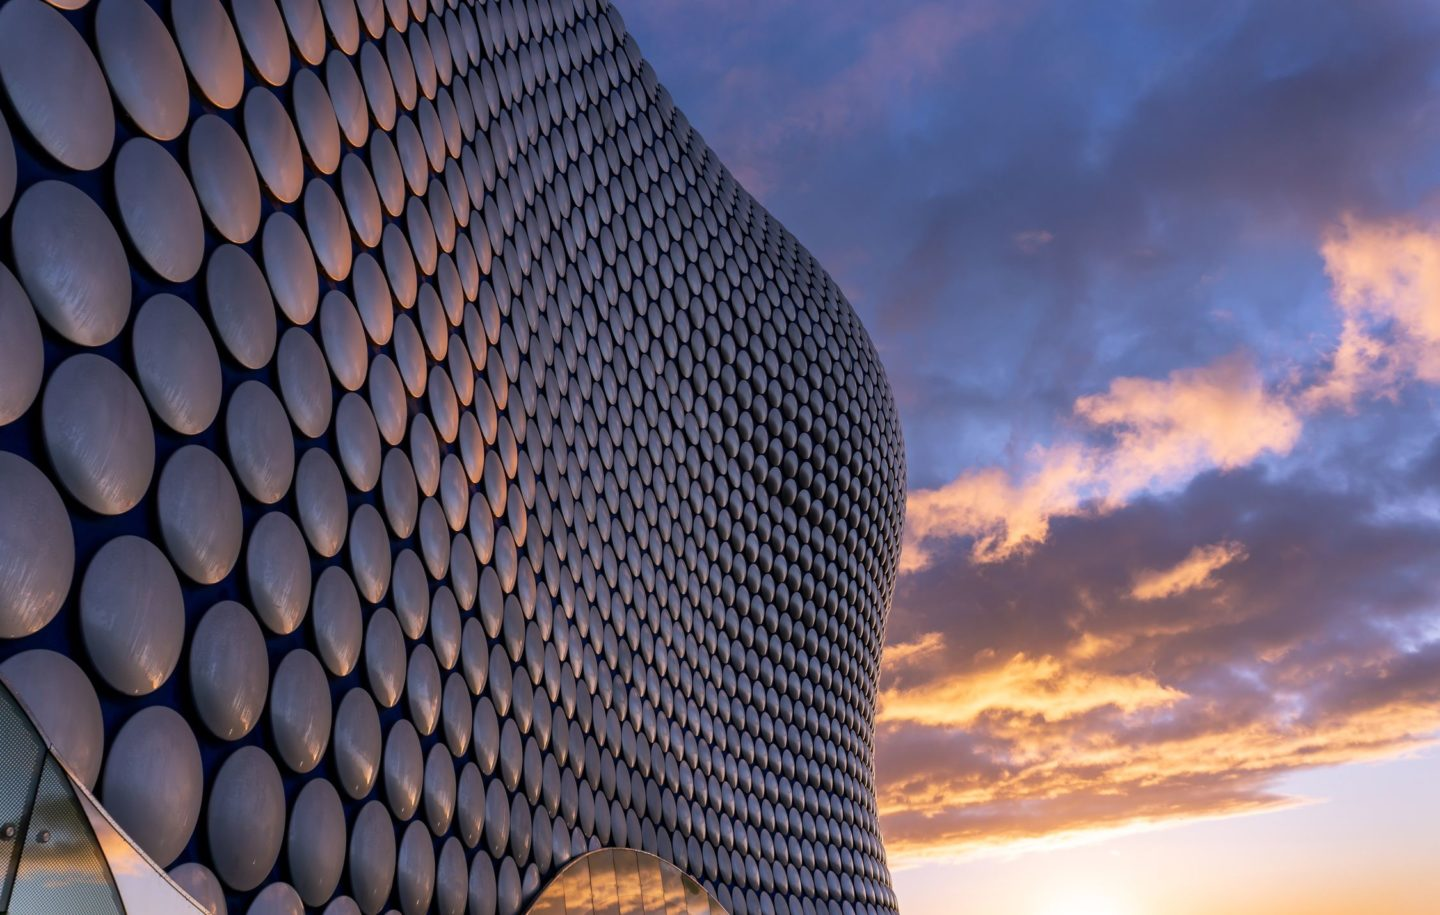 10 Things To Do In Birmingham, England